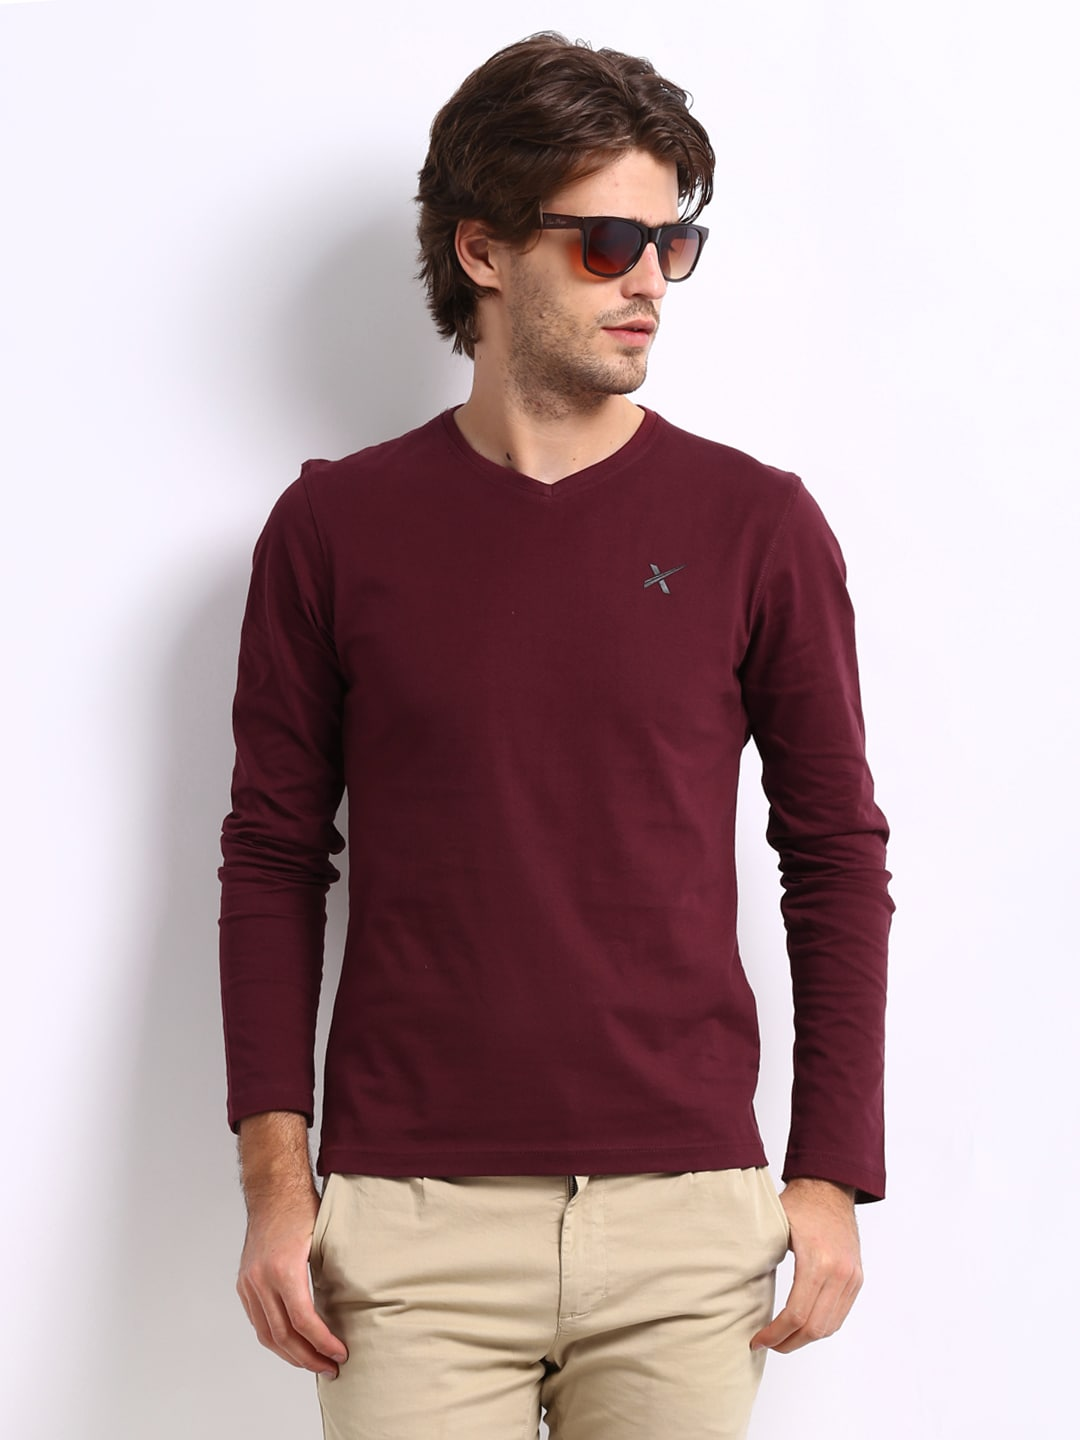 Online shopping at myntra india 39 s largest fashion and for Maroon t shirt for men